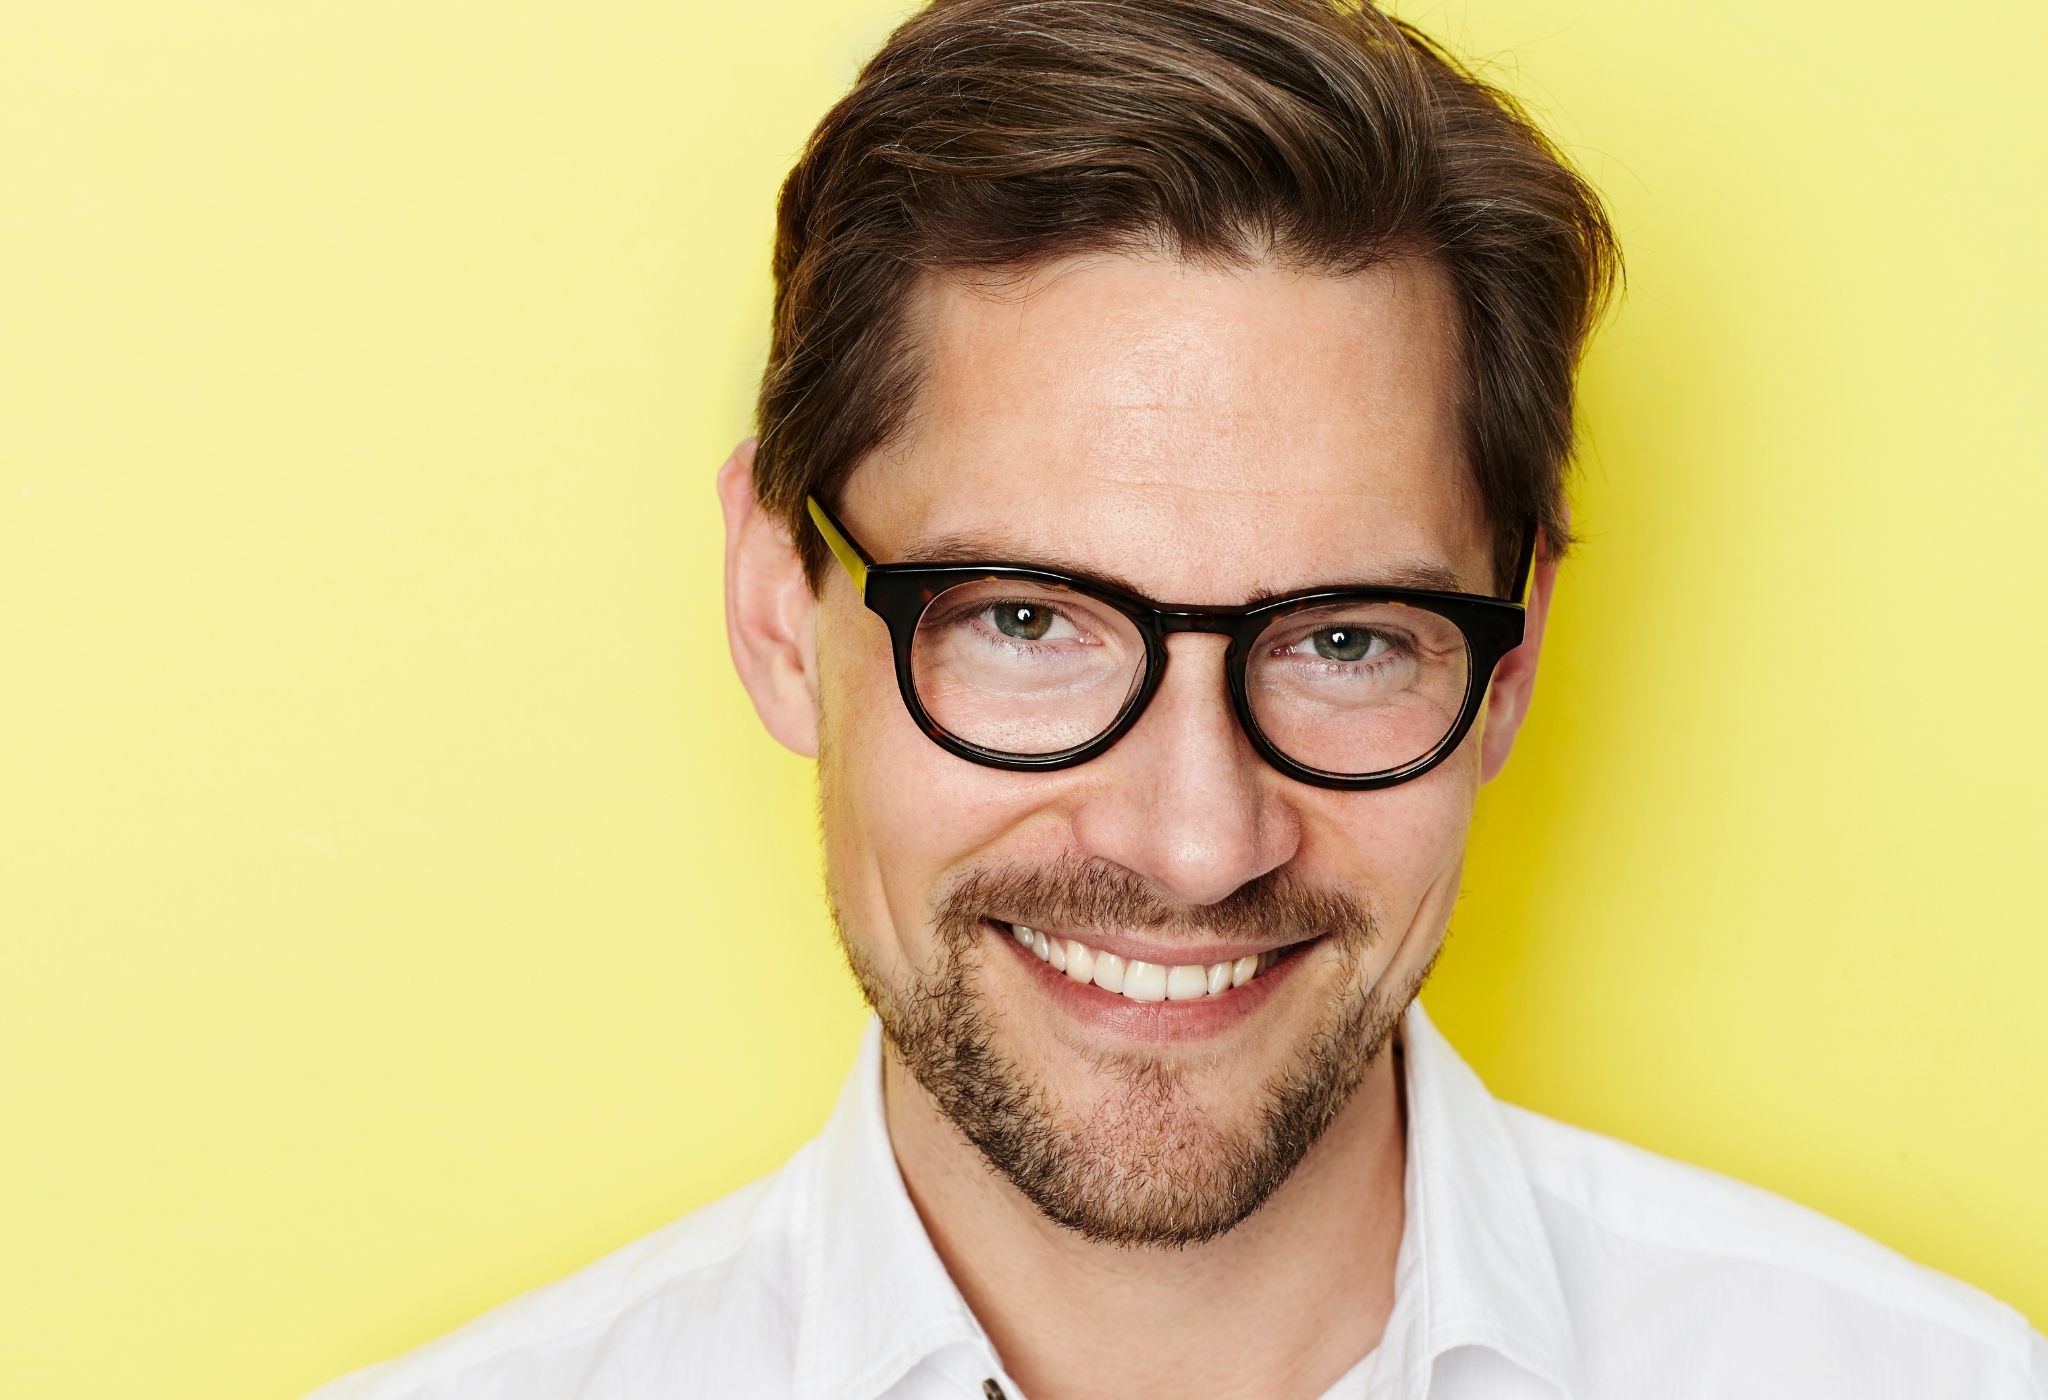 man wearing the glasses for his face shape